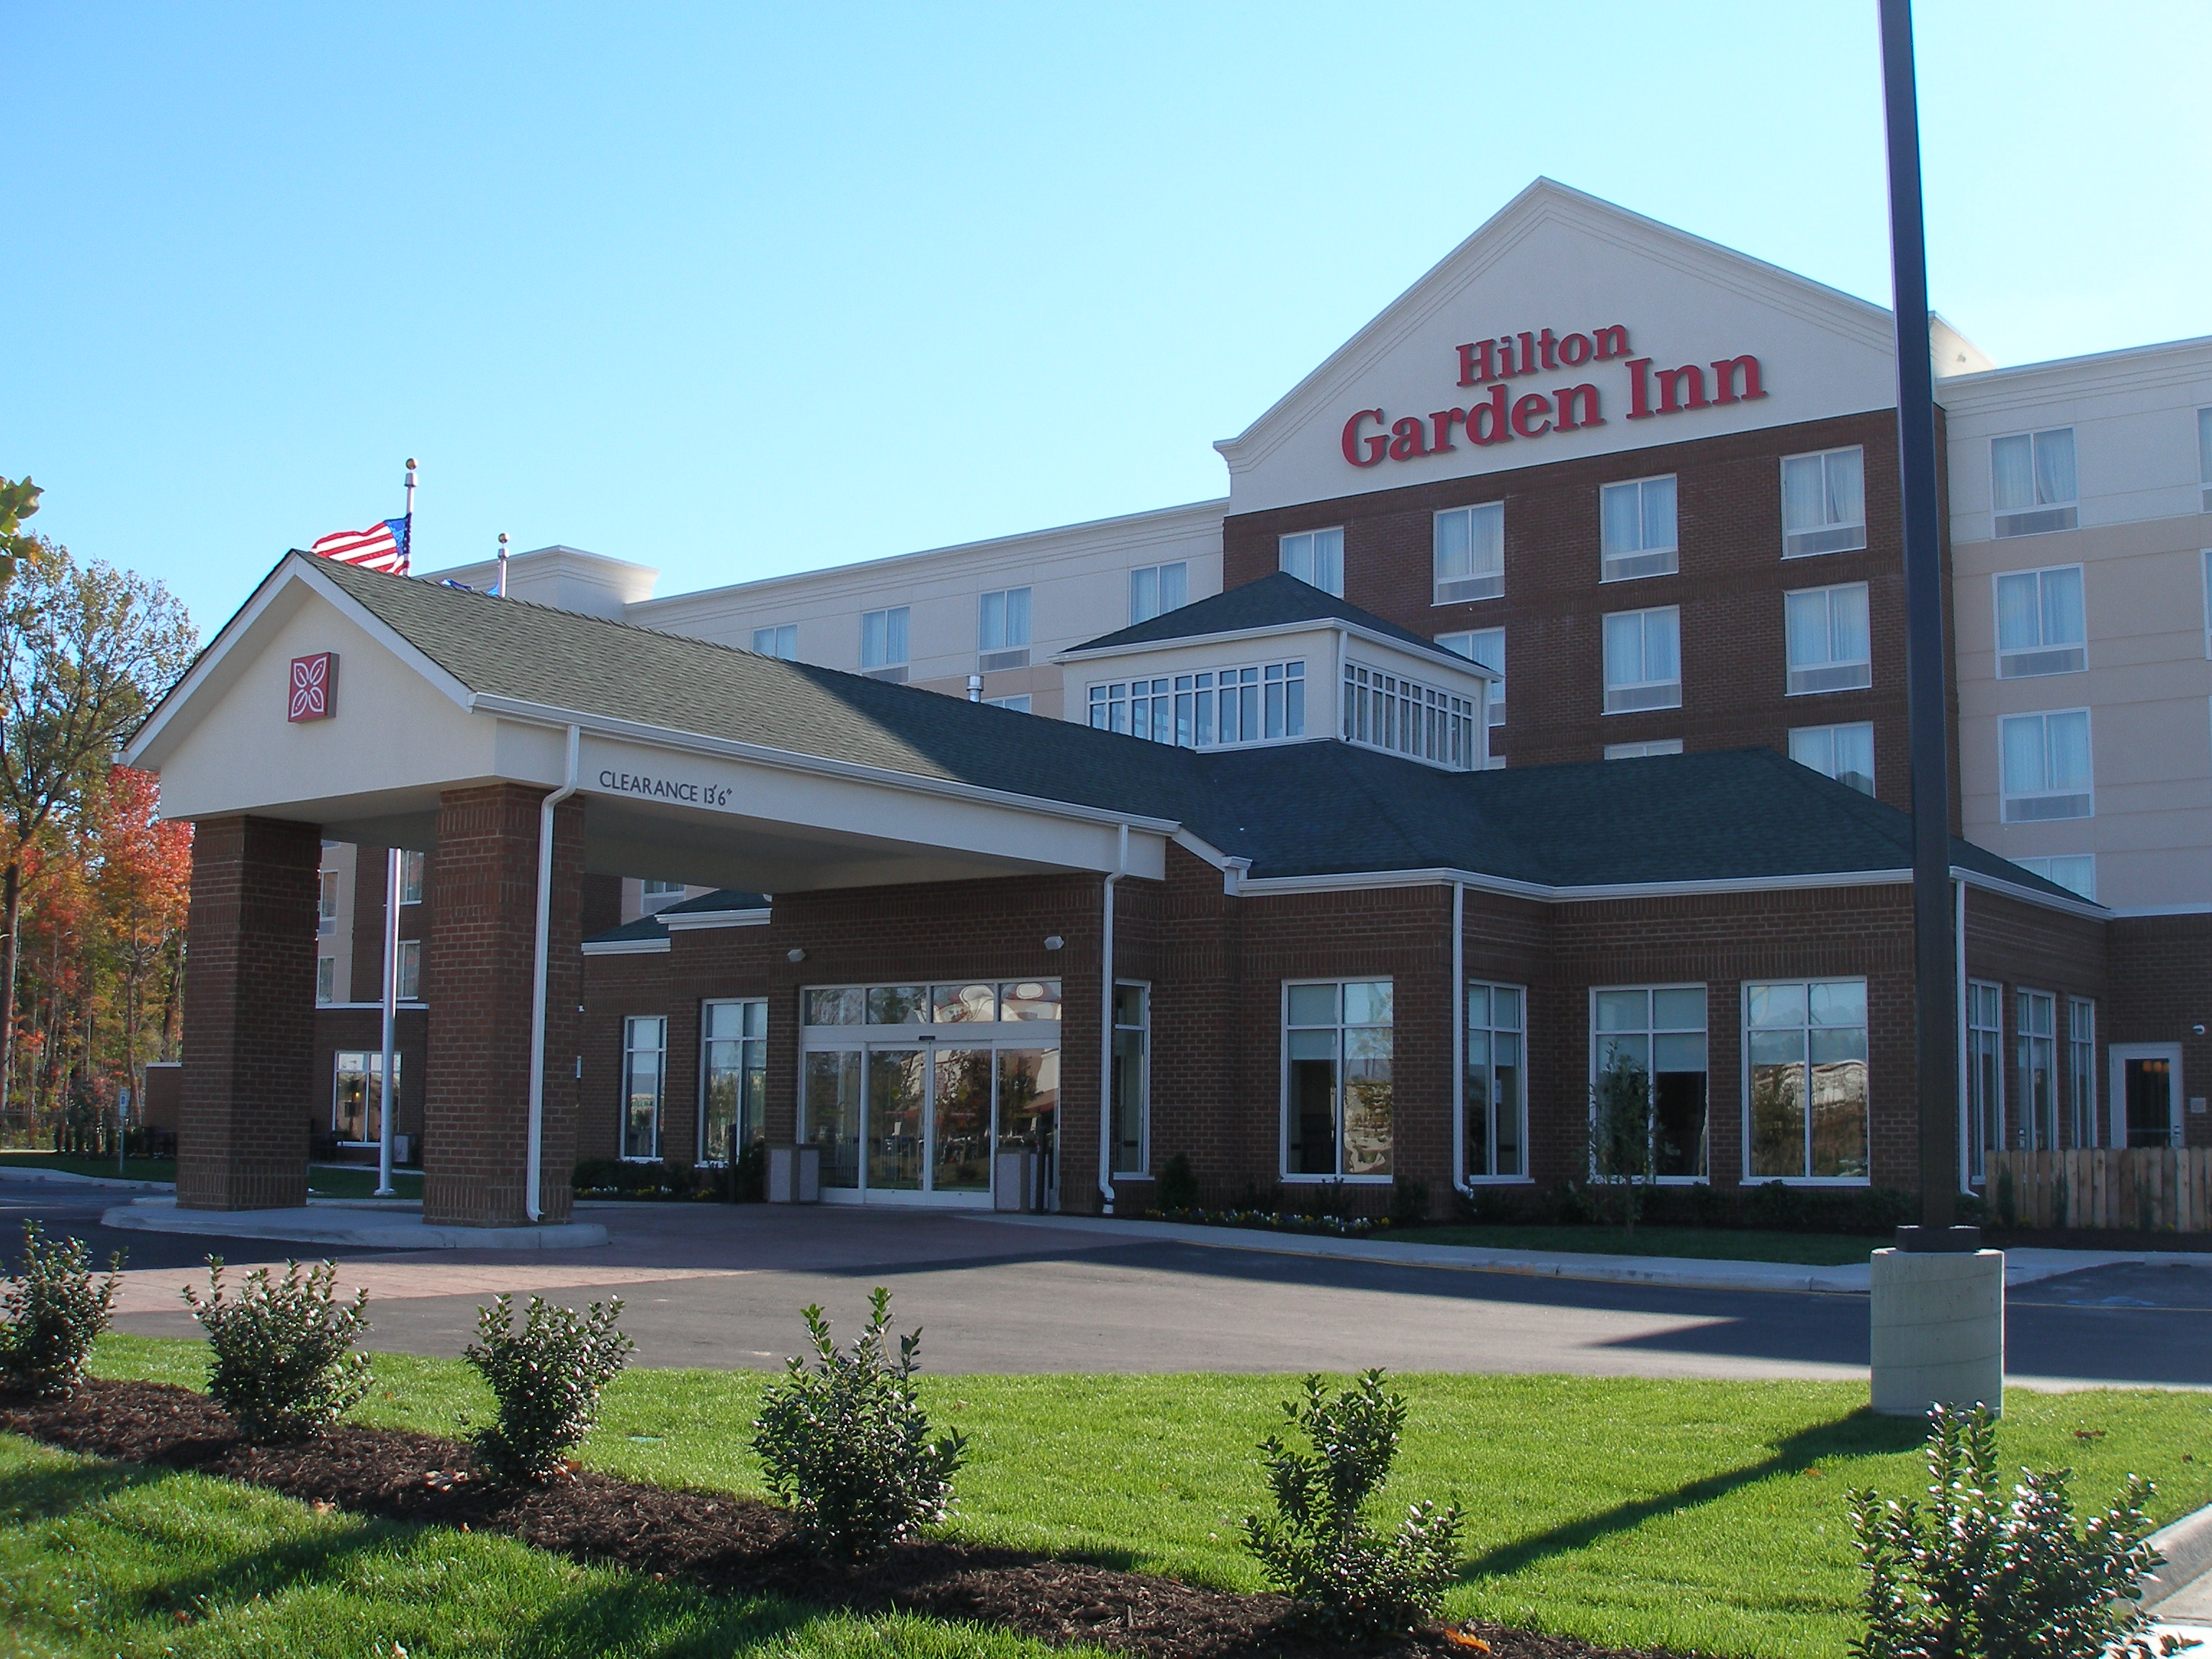 Hilton garden inn hampton coliseum central this is - Hilton garden inn hampton coliseum central ...